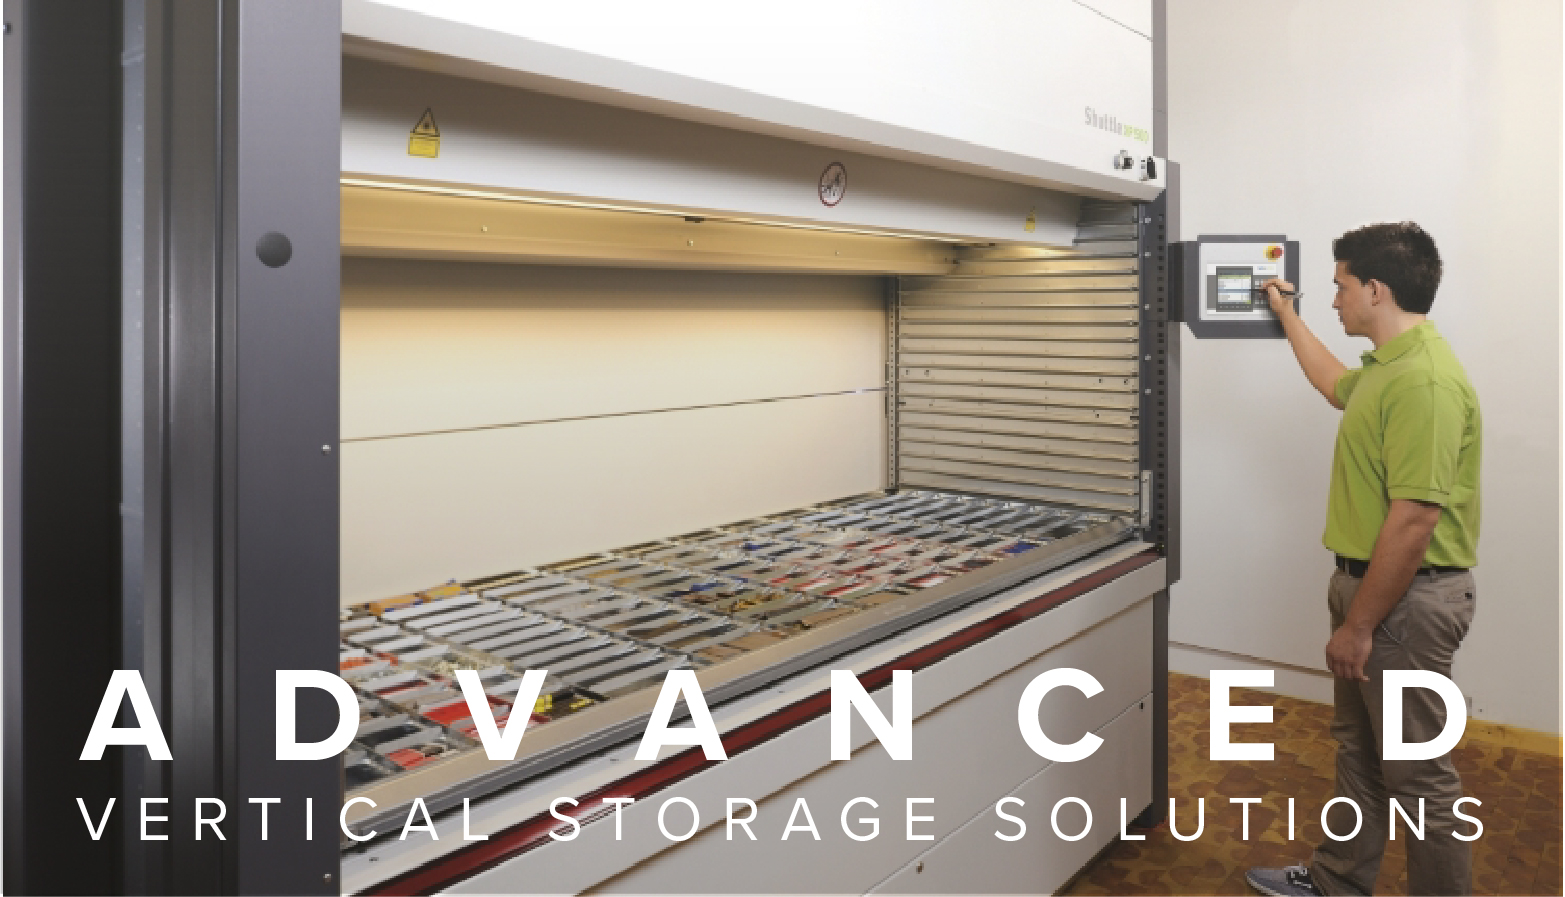 Storage Solutions Advanced Vertical Storage Solutions Advanced Companies